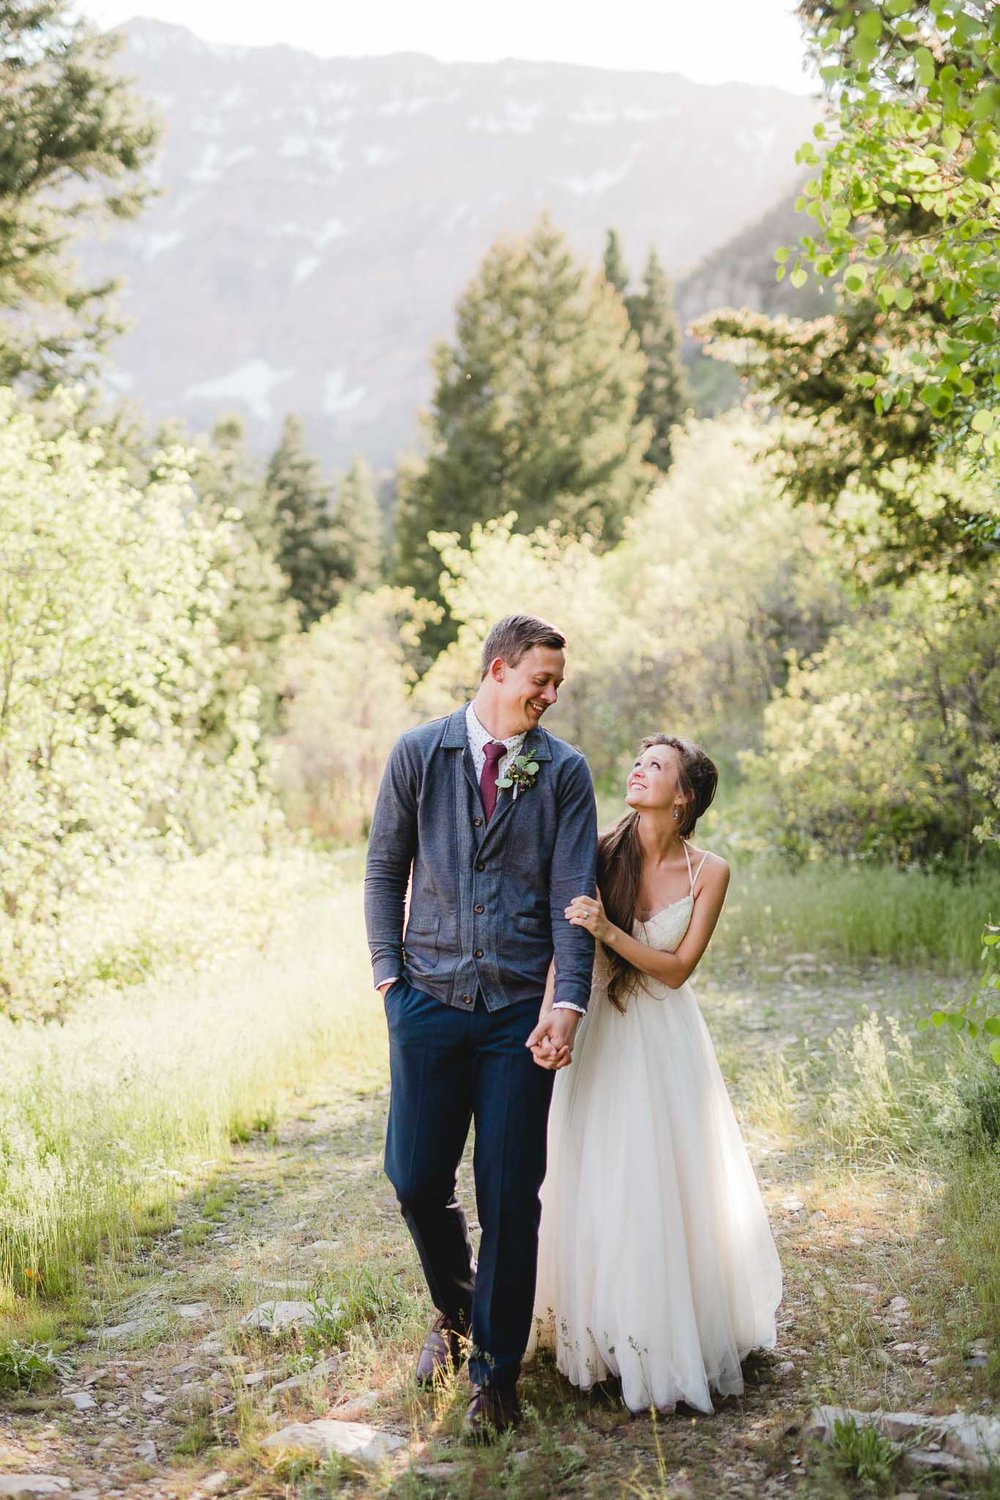 Bride and groom walk for candid portrait adventure wedding in Provo Utah